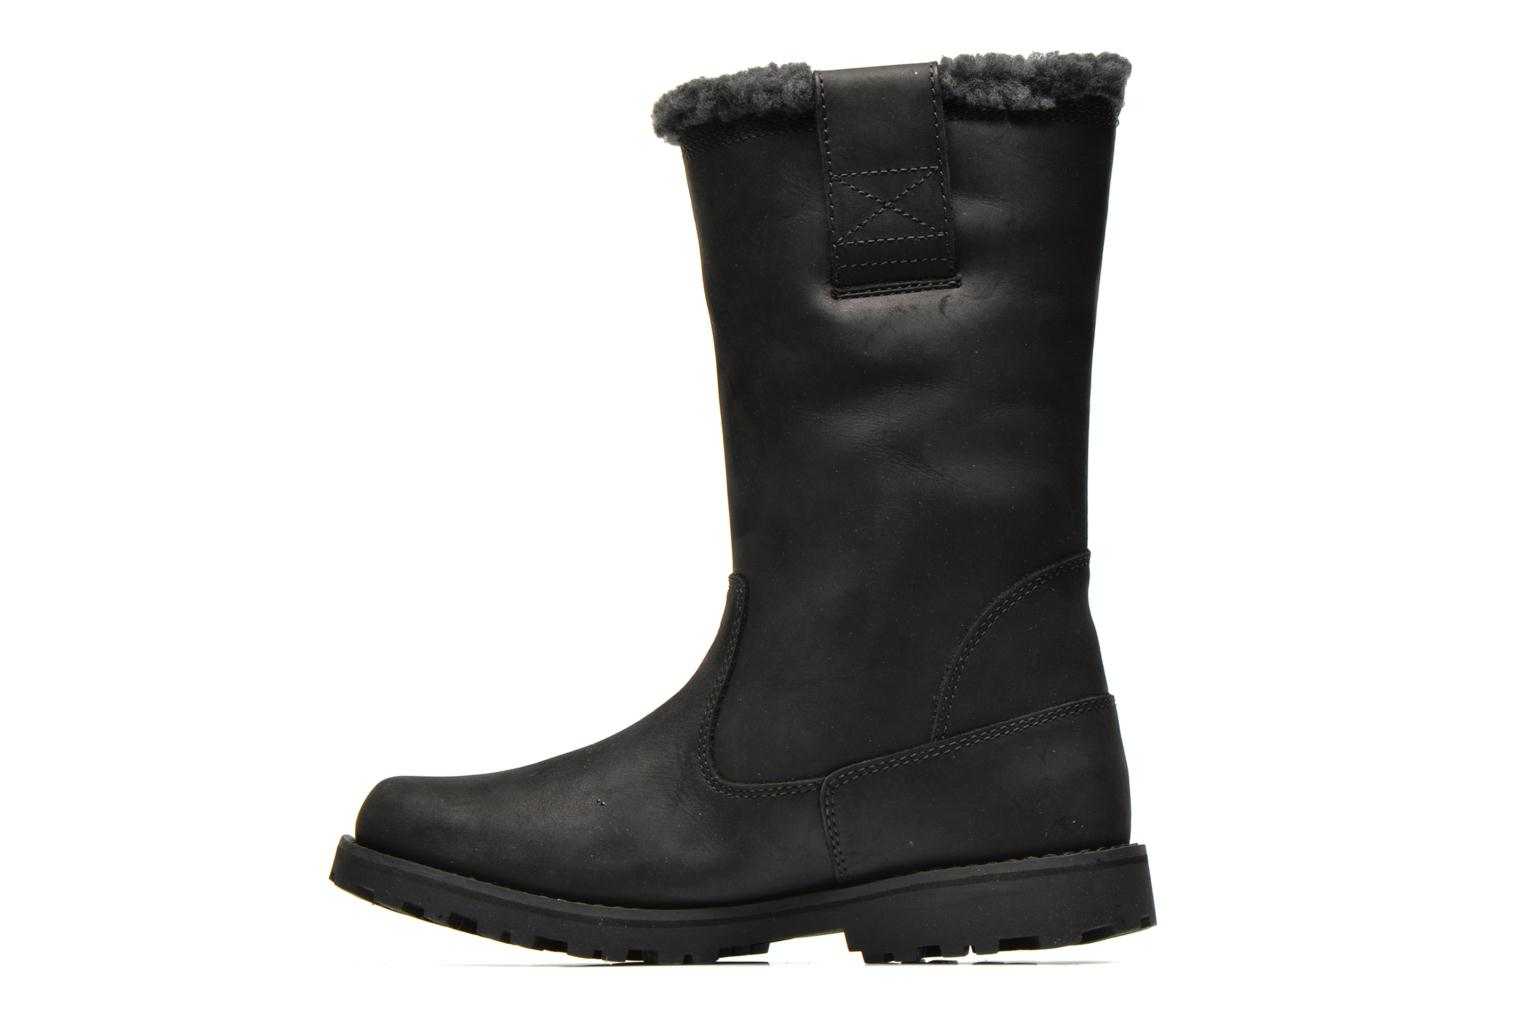 Bottines et boots Timberland 8 IN PULL ON WP BOOT Noir vue face